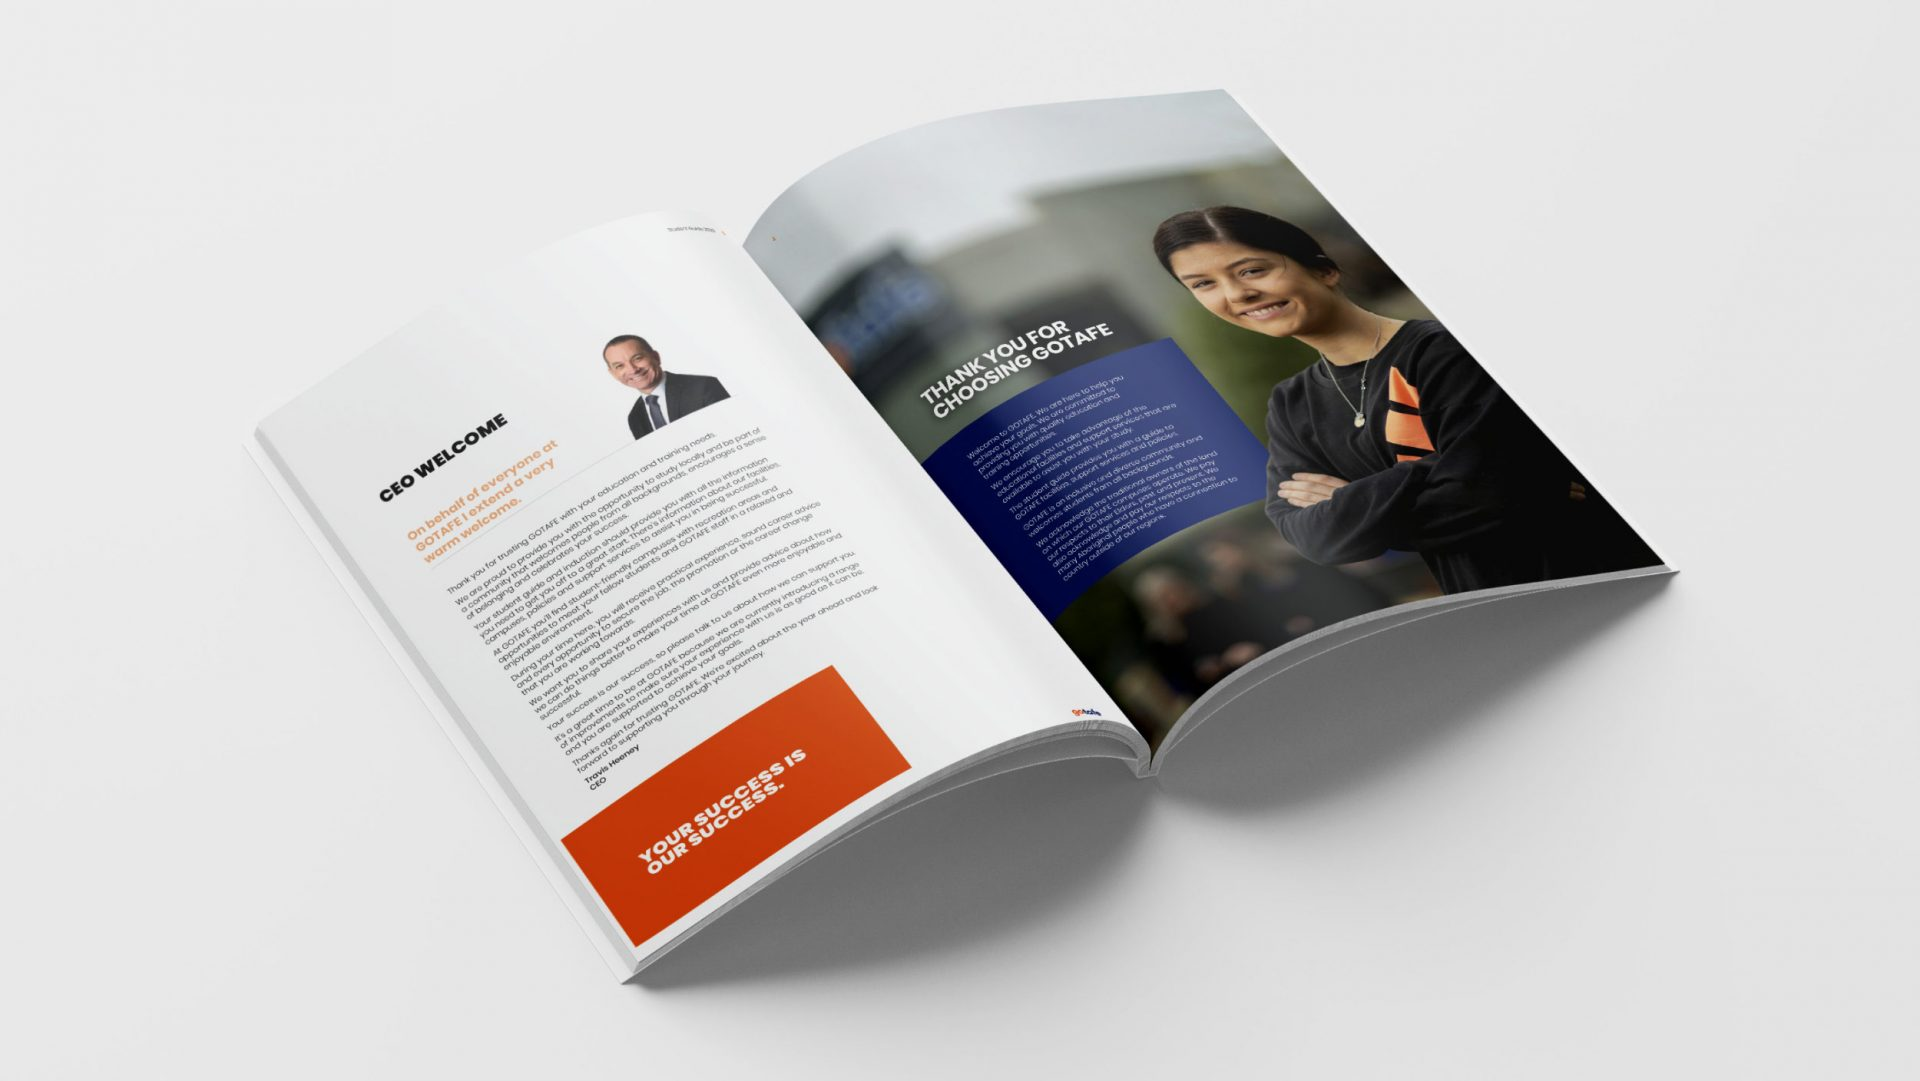 2020 Student Guide spread for gotafe